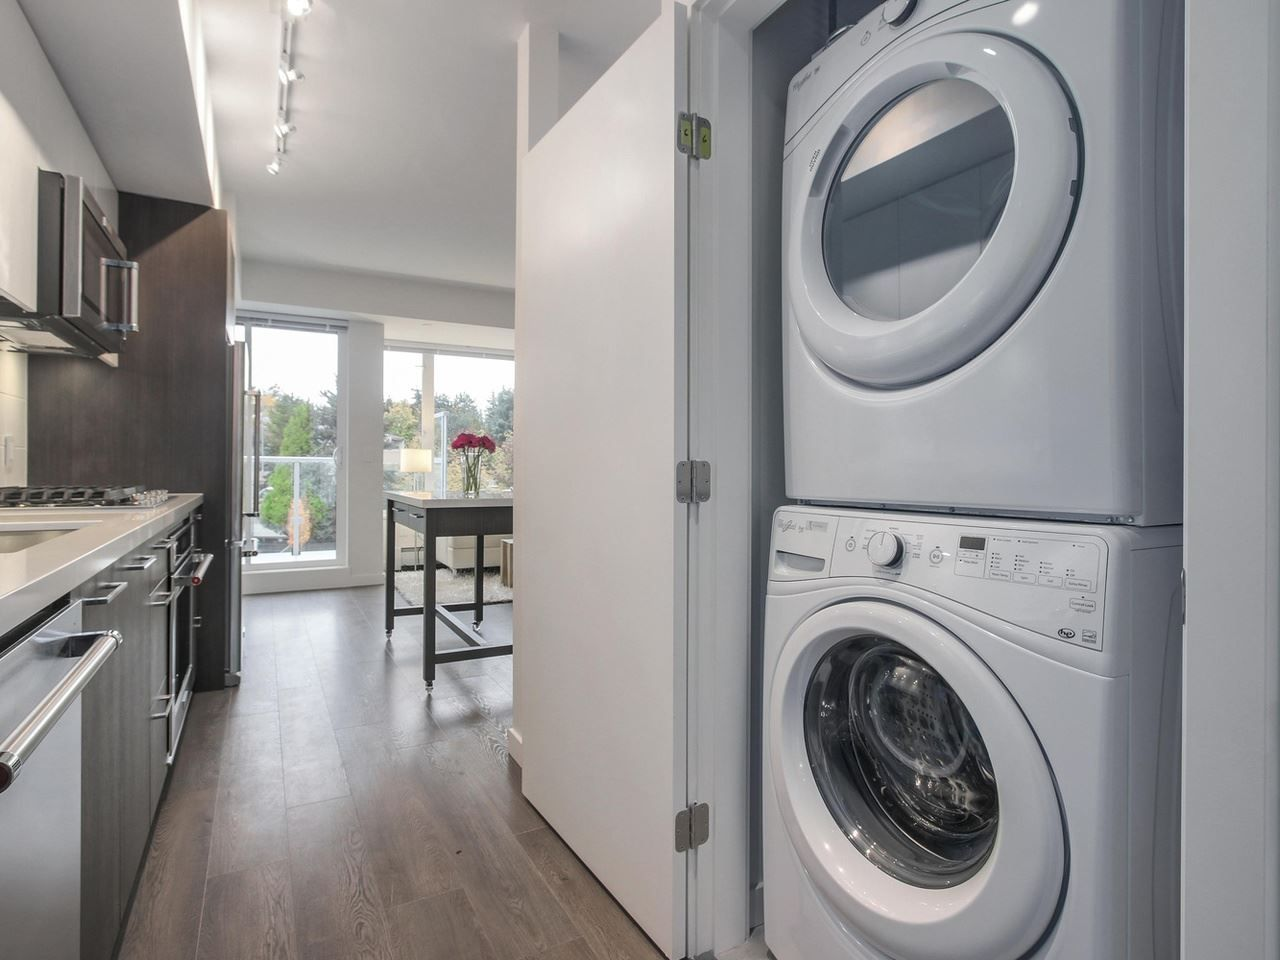 """Photo 9: Photos: 604 417 GREAT NORTHERN Way in Vancouver: Mount Pleasant VE Condo for sale in """"CANVAS"""" (Vancouver East)  : MLS®# R2118078"""